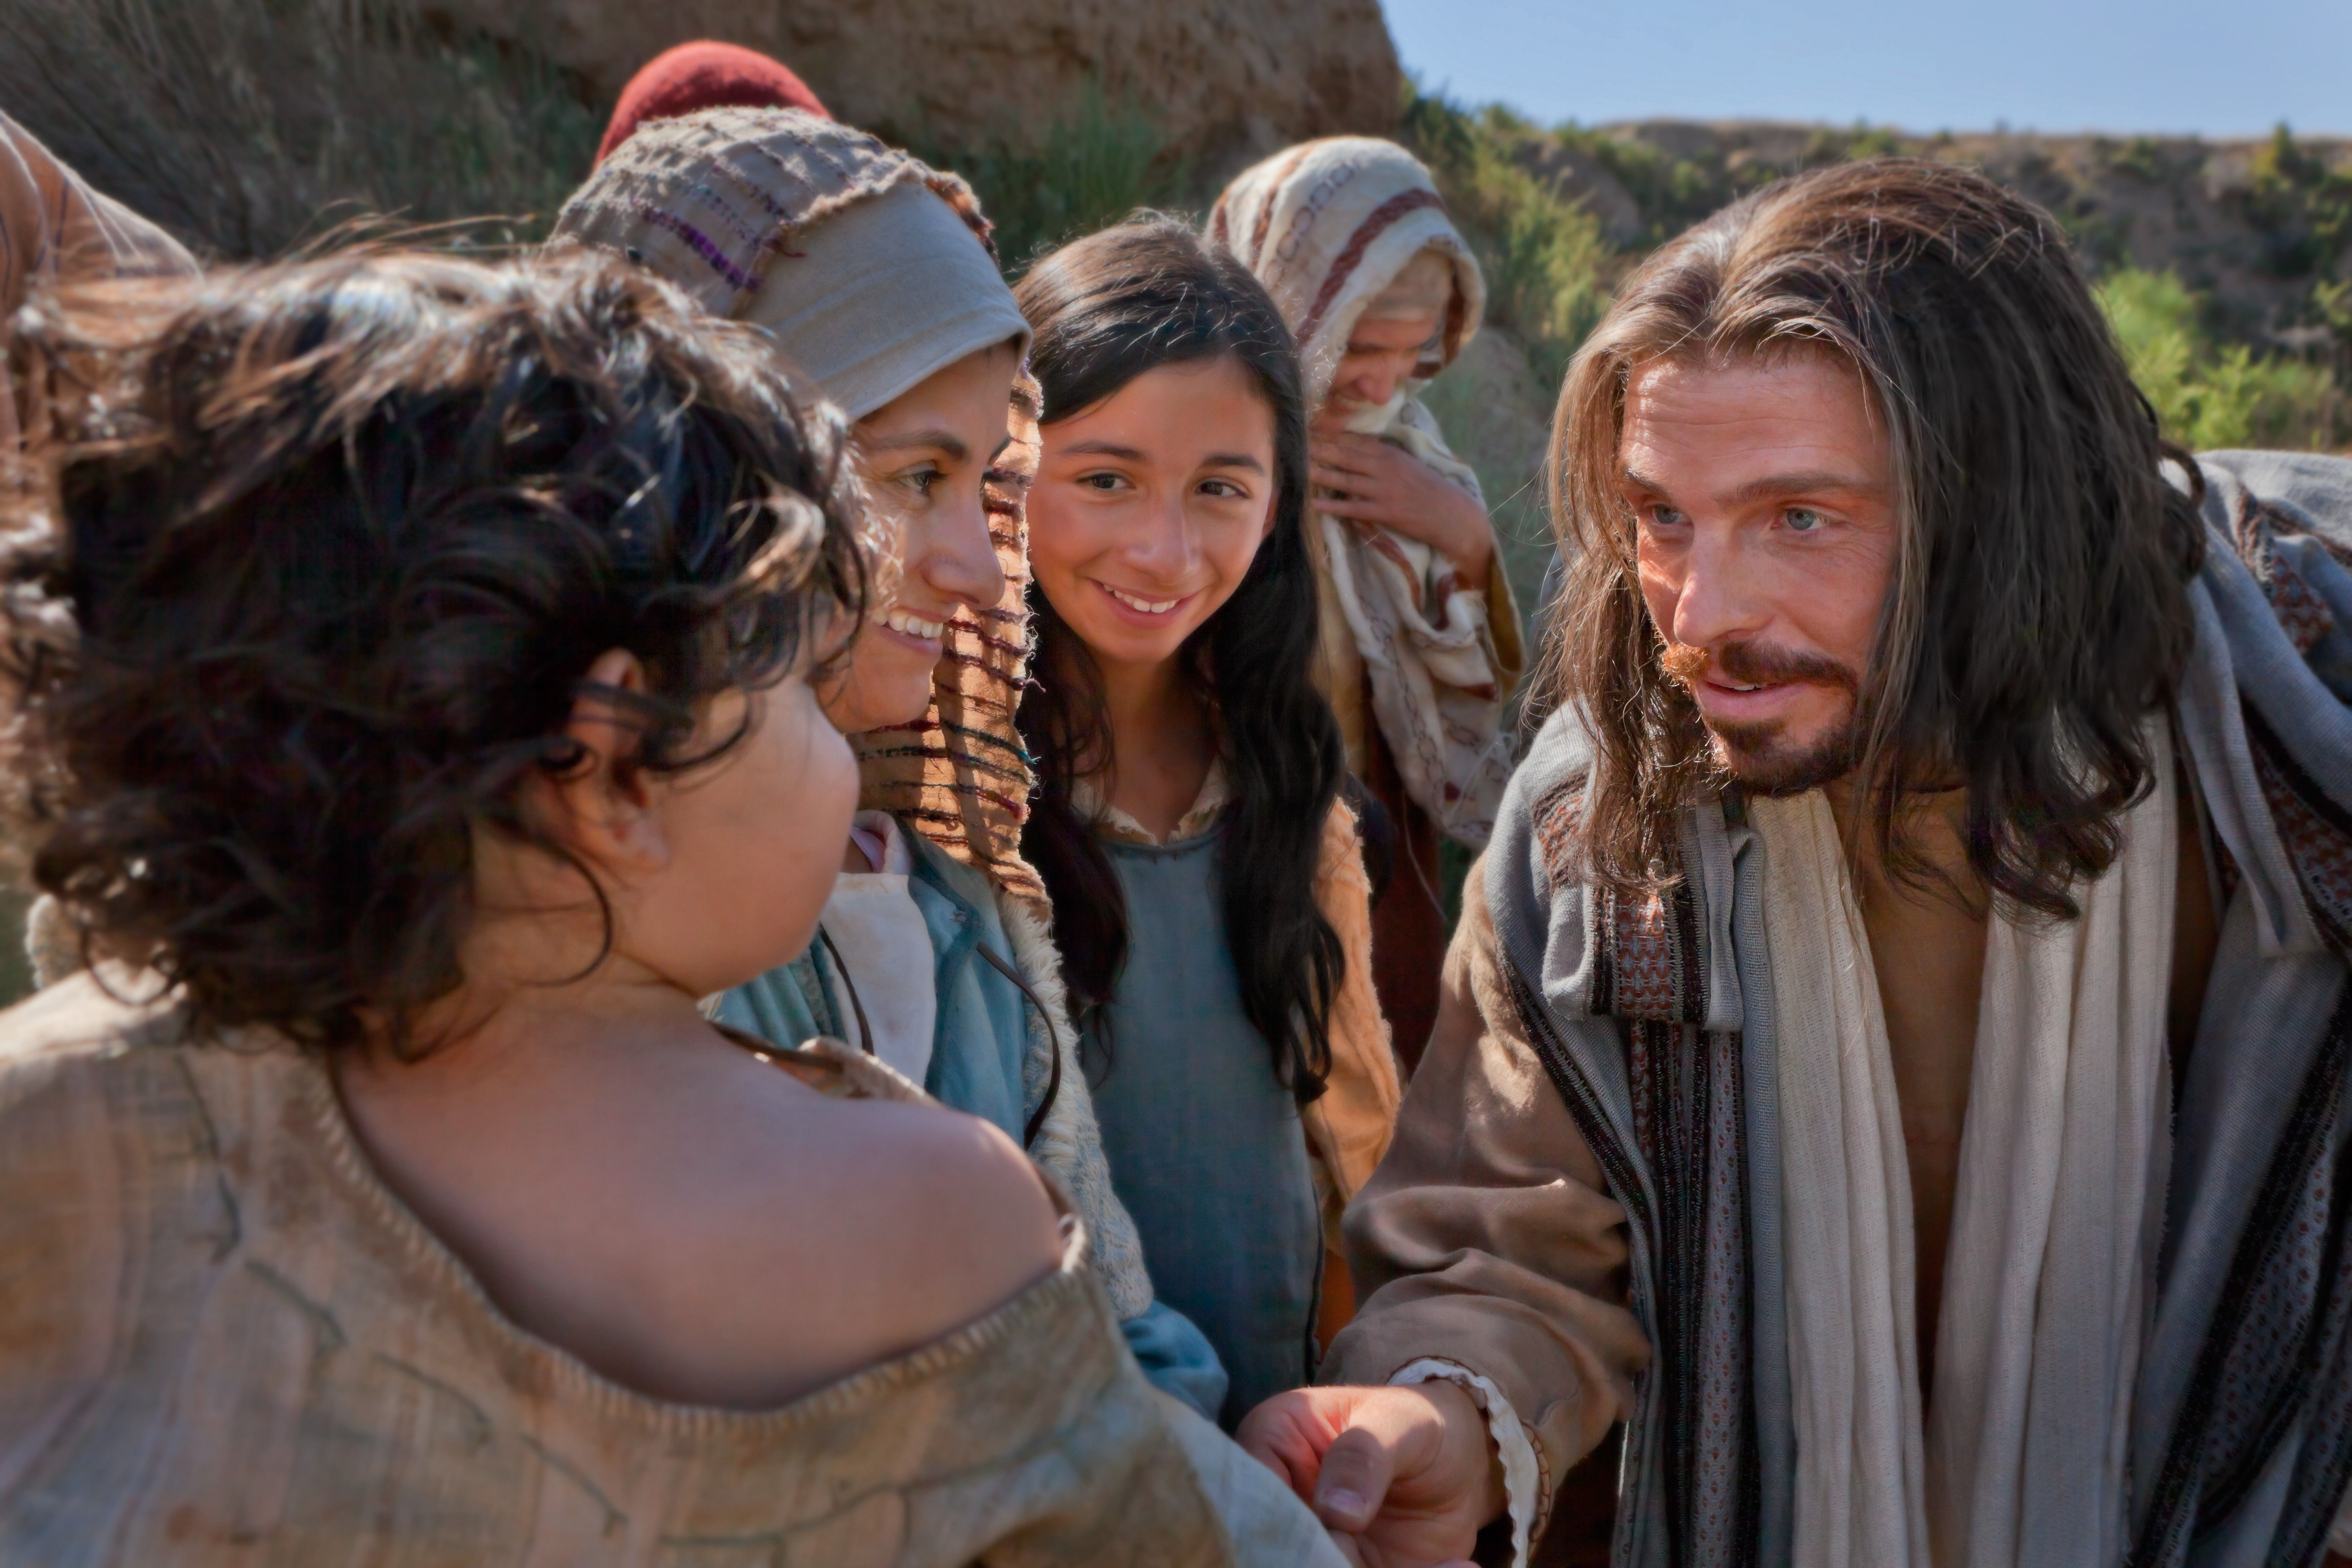 Jesus talking with a child and the child's mother.